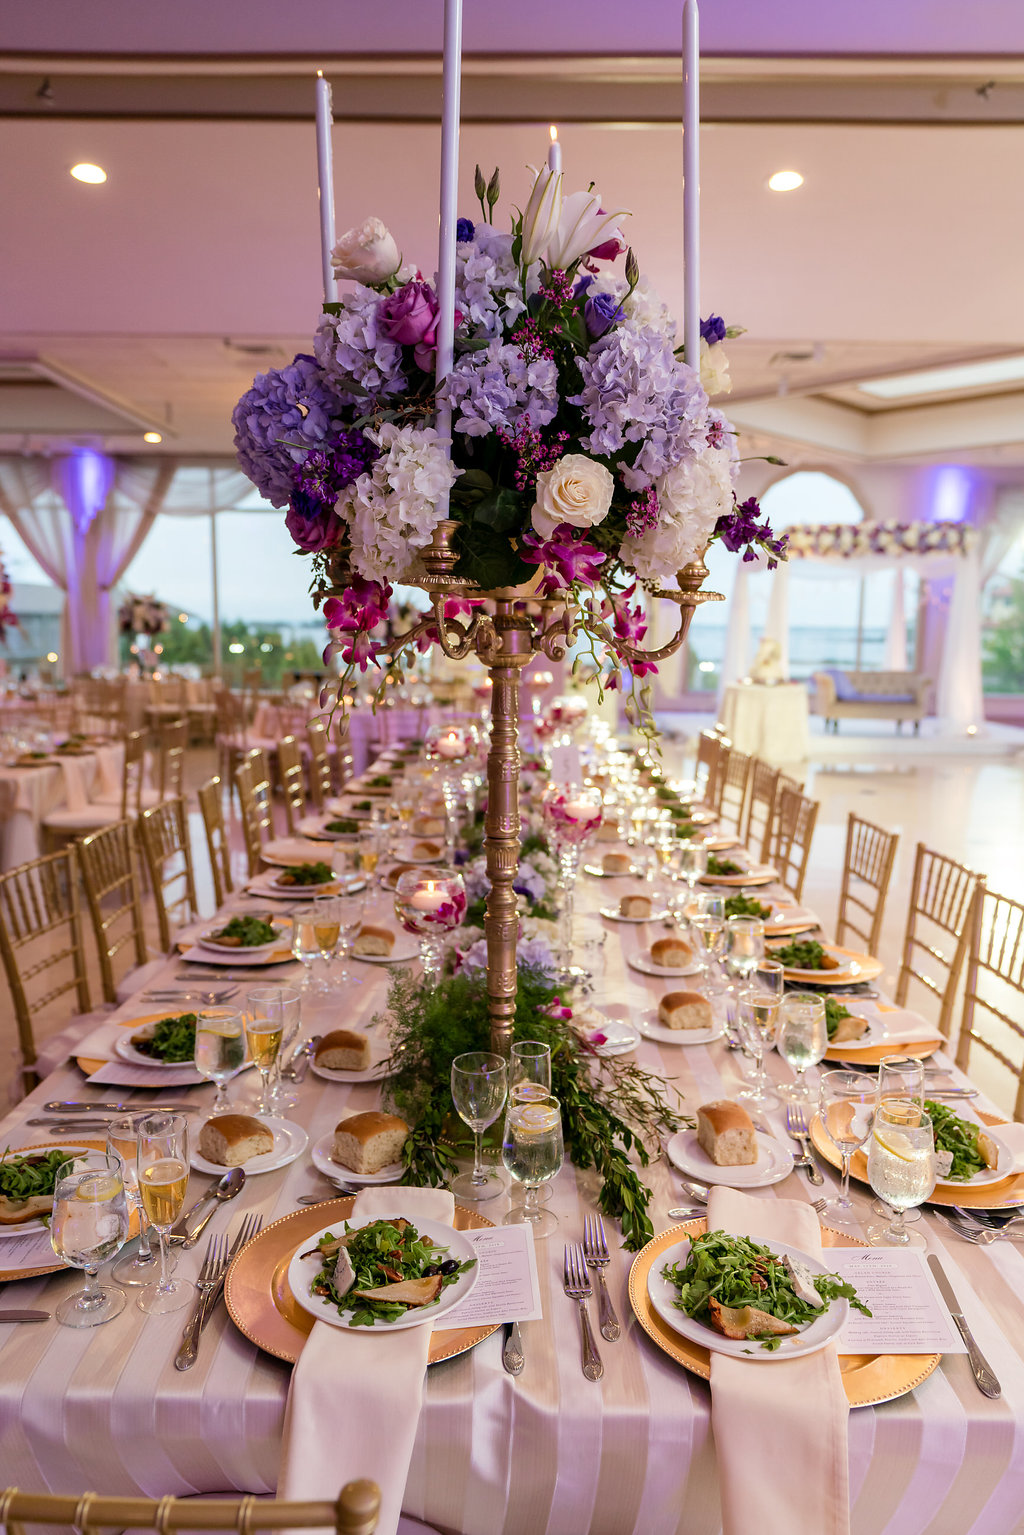 INDIAN WEDDING TABLE SETTING WITH CENTERPIECE CLOSEUP.jpg